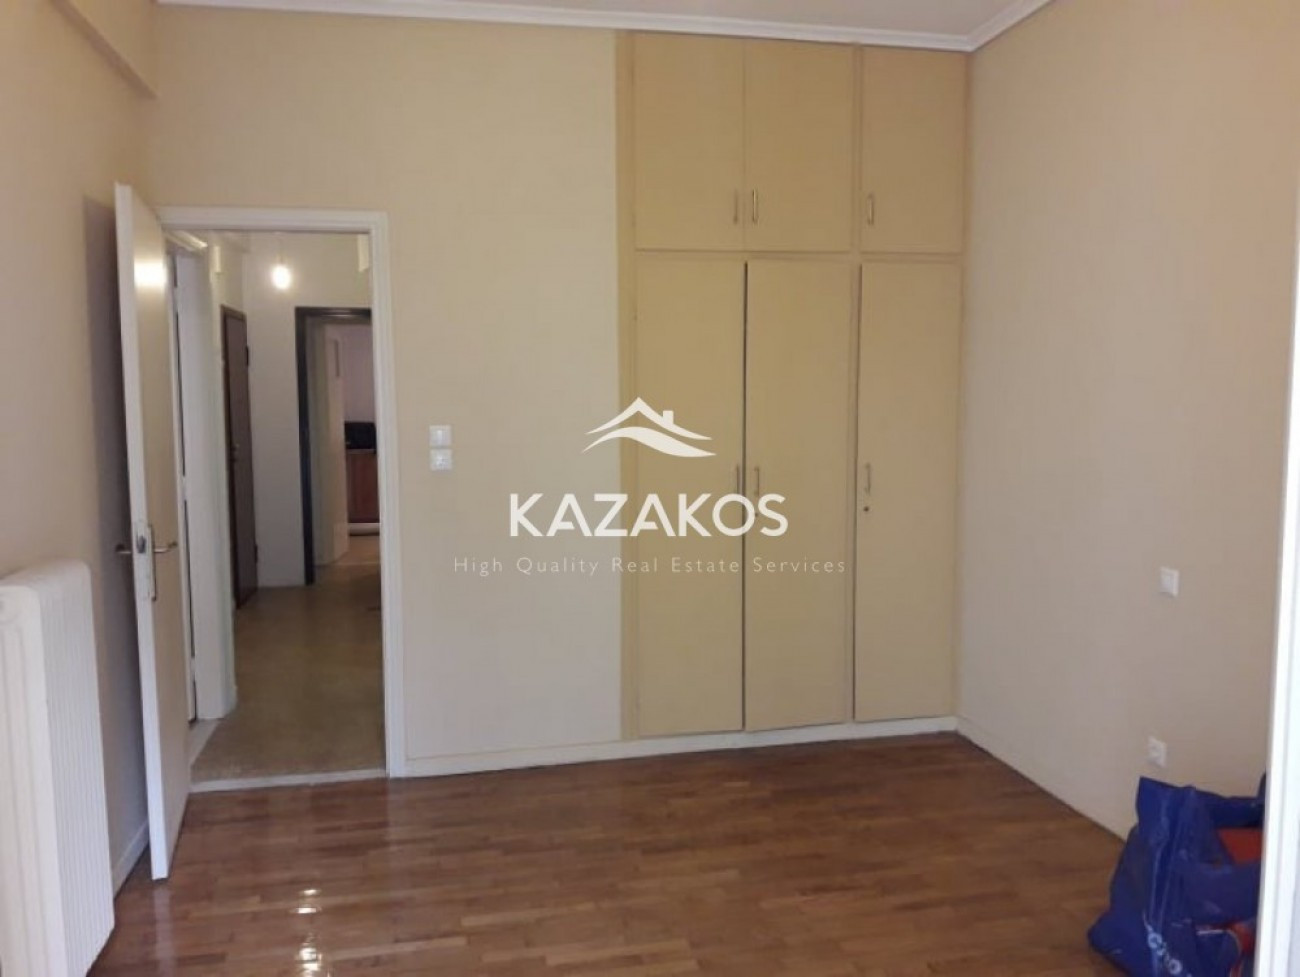 Office for Rent in Kipseli, Athens City Center, Greece